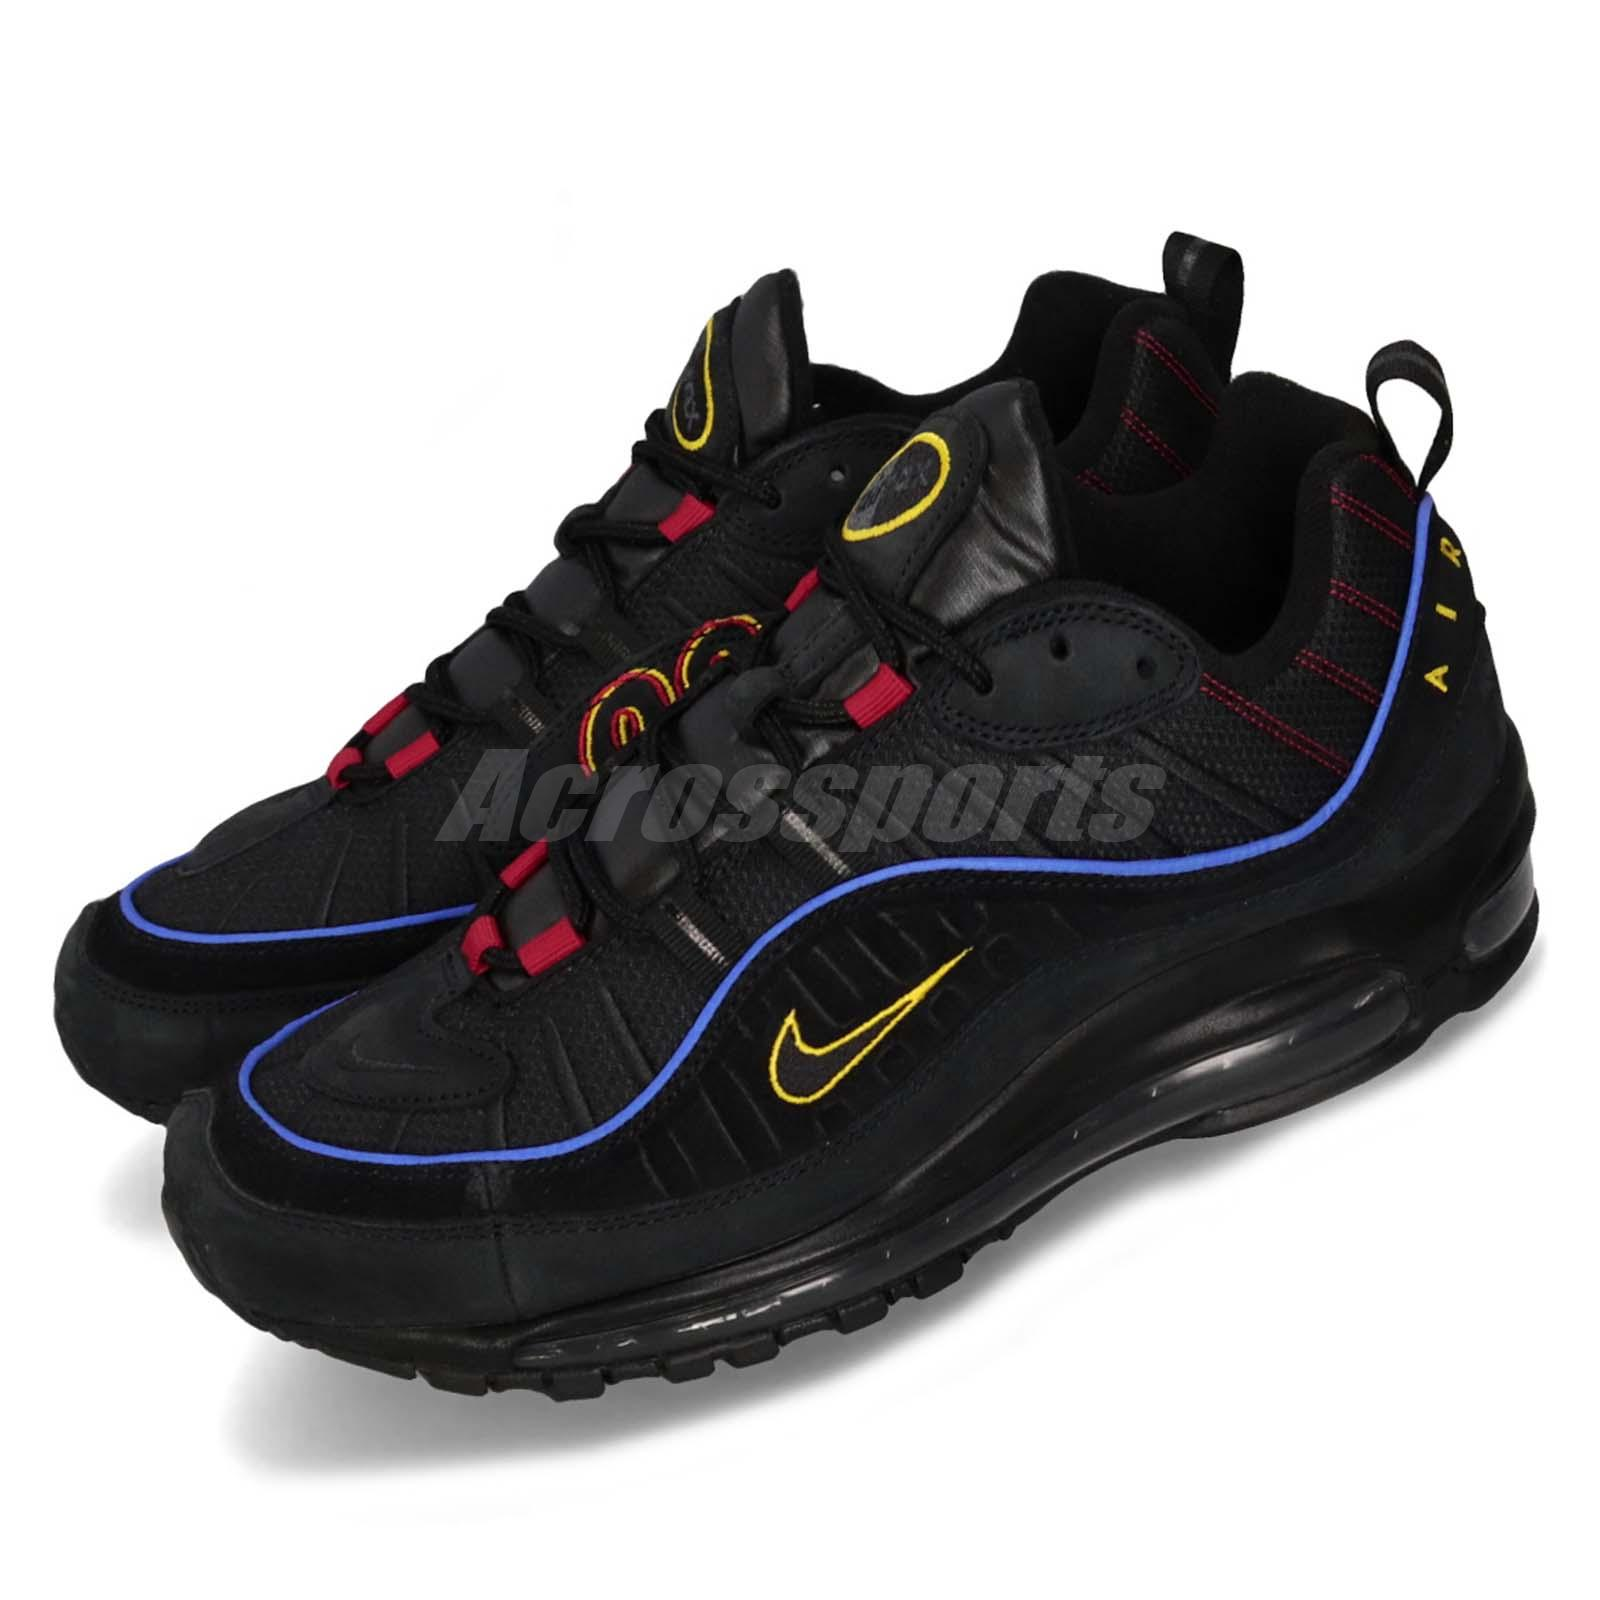 Details about Nike Air Max 98 Present Black Red Yellow Men Running scarpa Sneakers CD1537 001